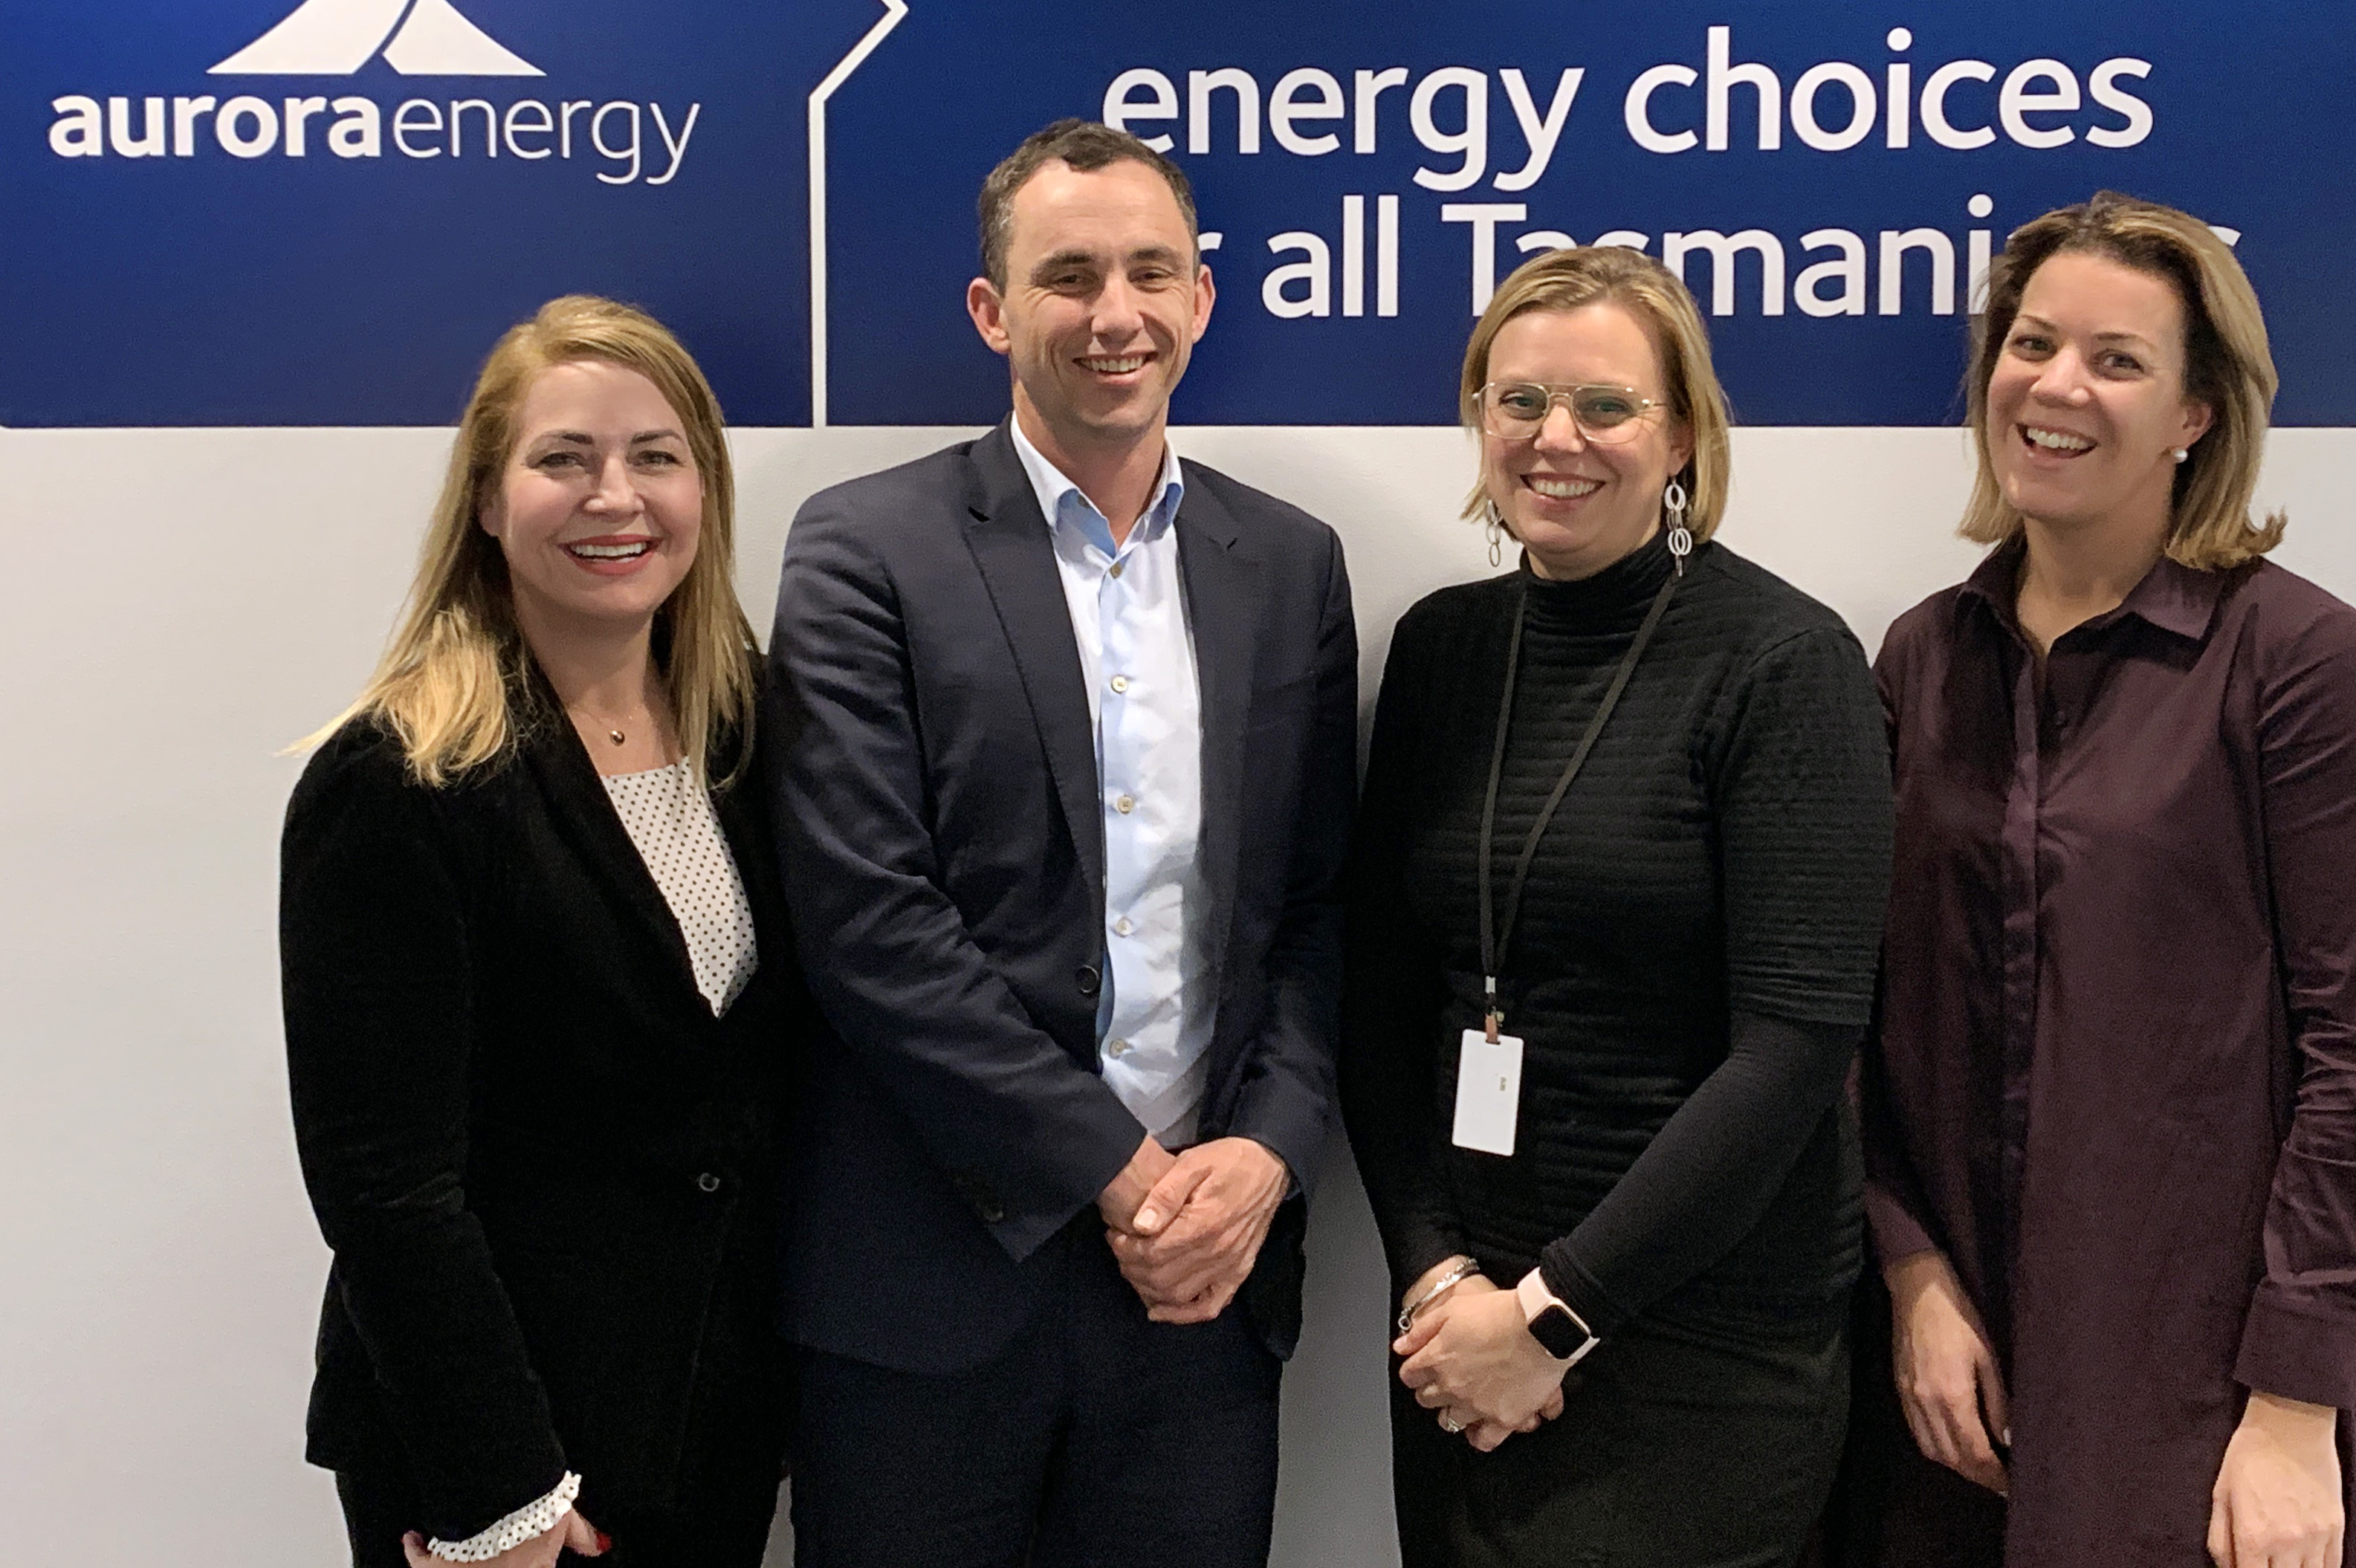 Aurora Energy appoints McCann Melbourne as creative agency following a competitive pitch